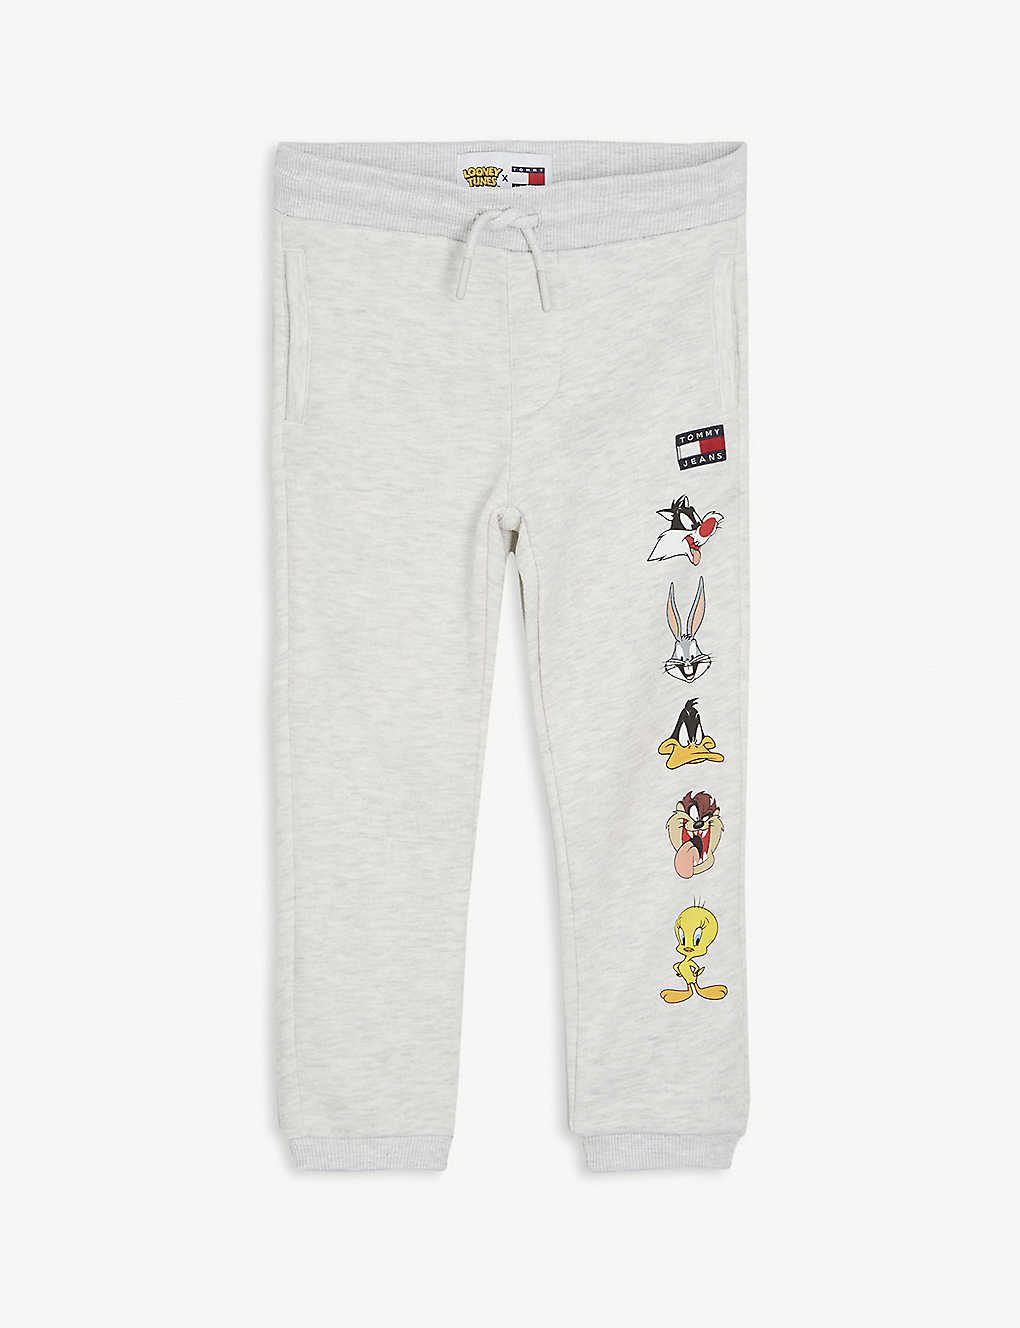 TOMMY HILFIGER: Tommy Jeans x Looney Tunes cotton-blend jogging bottoms 4-12 years